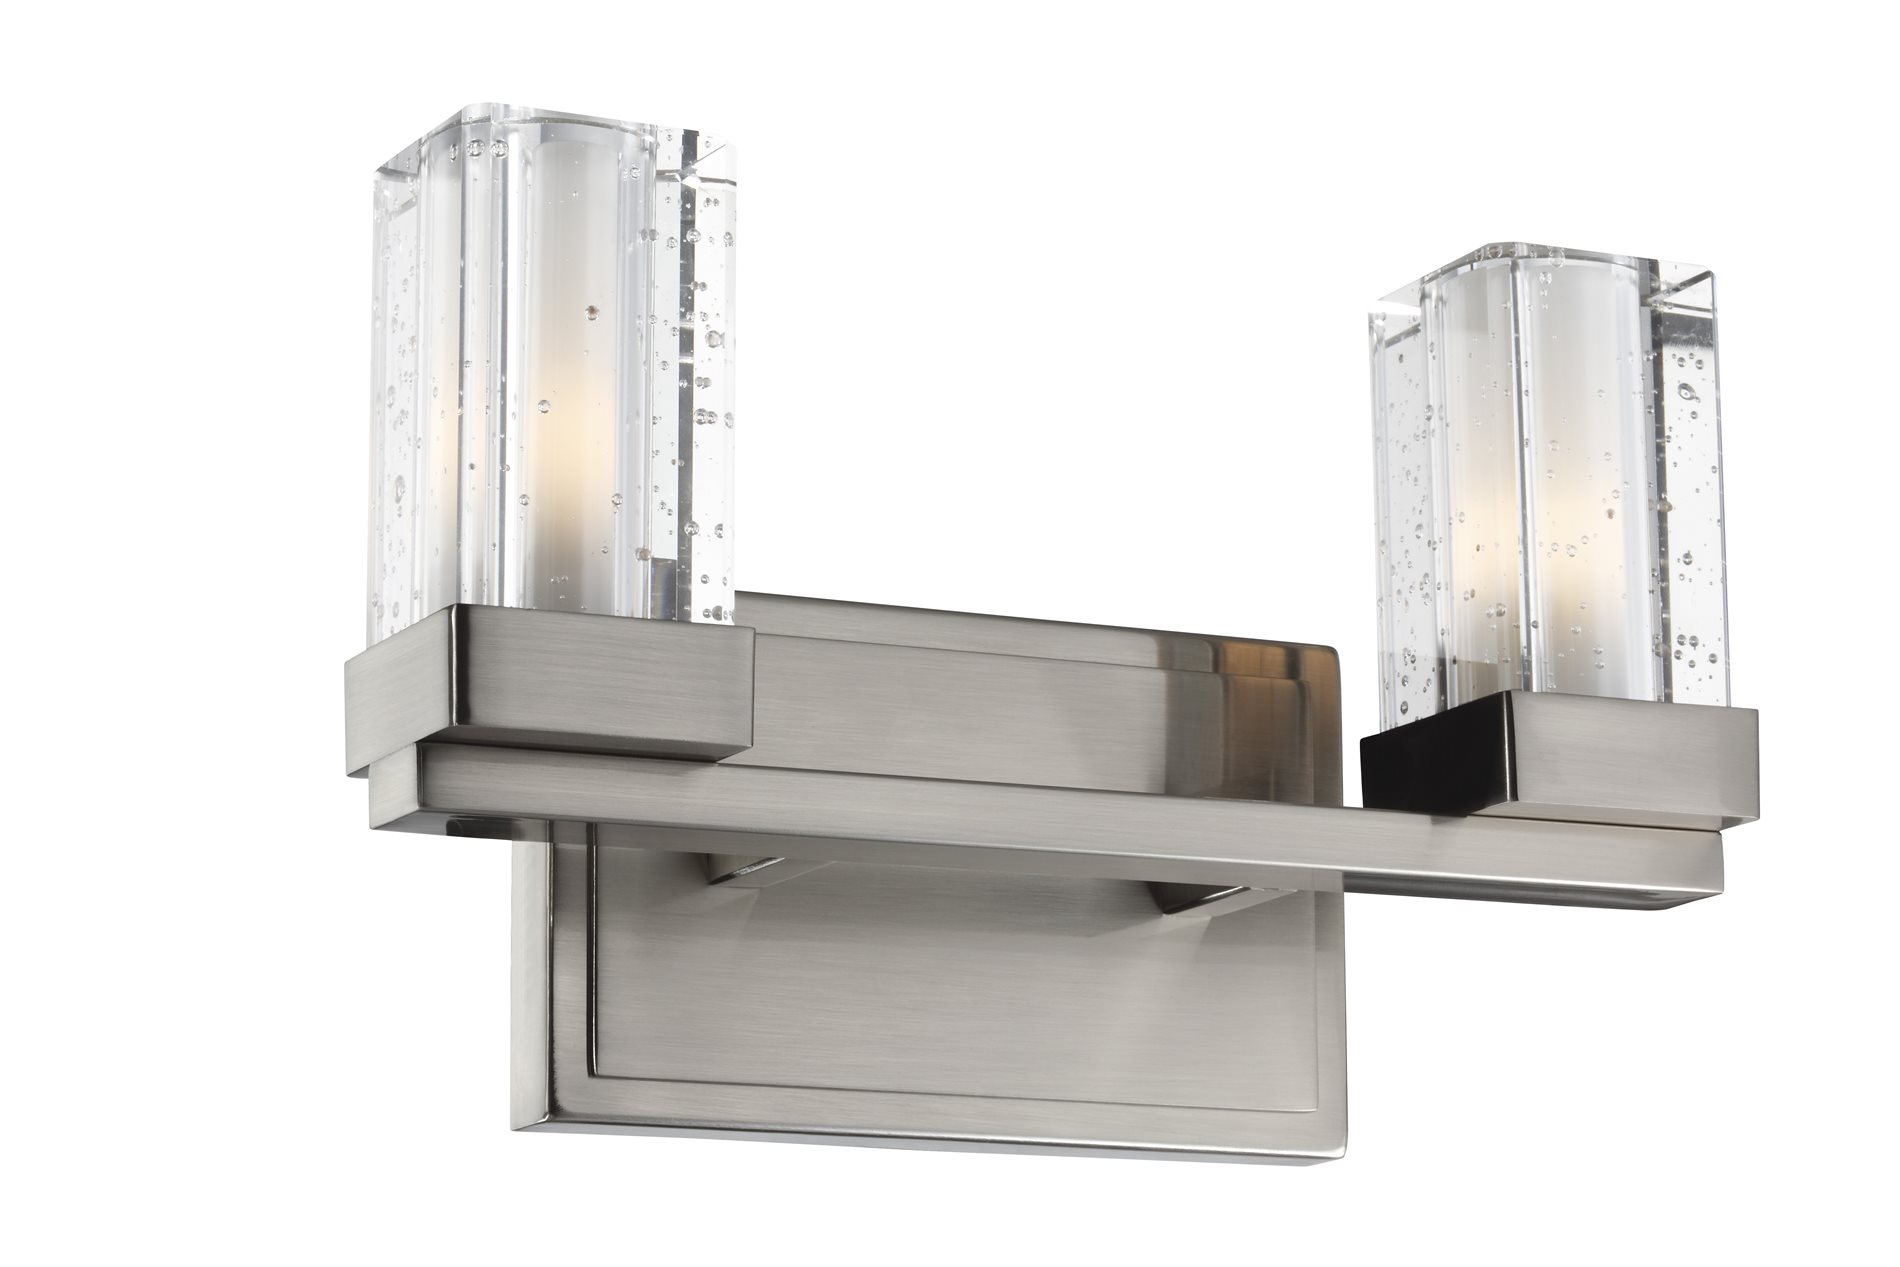 Murray Feiss Vs51002 Bs Tonic Transitional Bathroom Vanity Light Mrf Vs51002 Bs